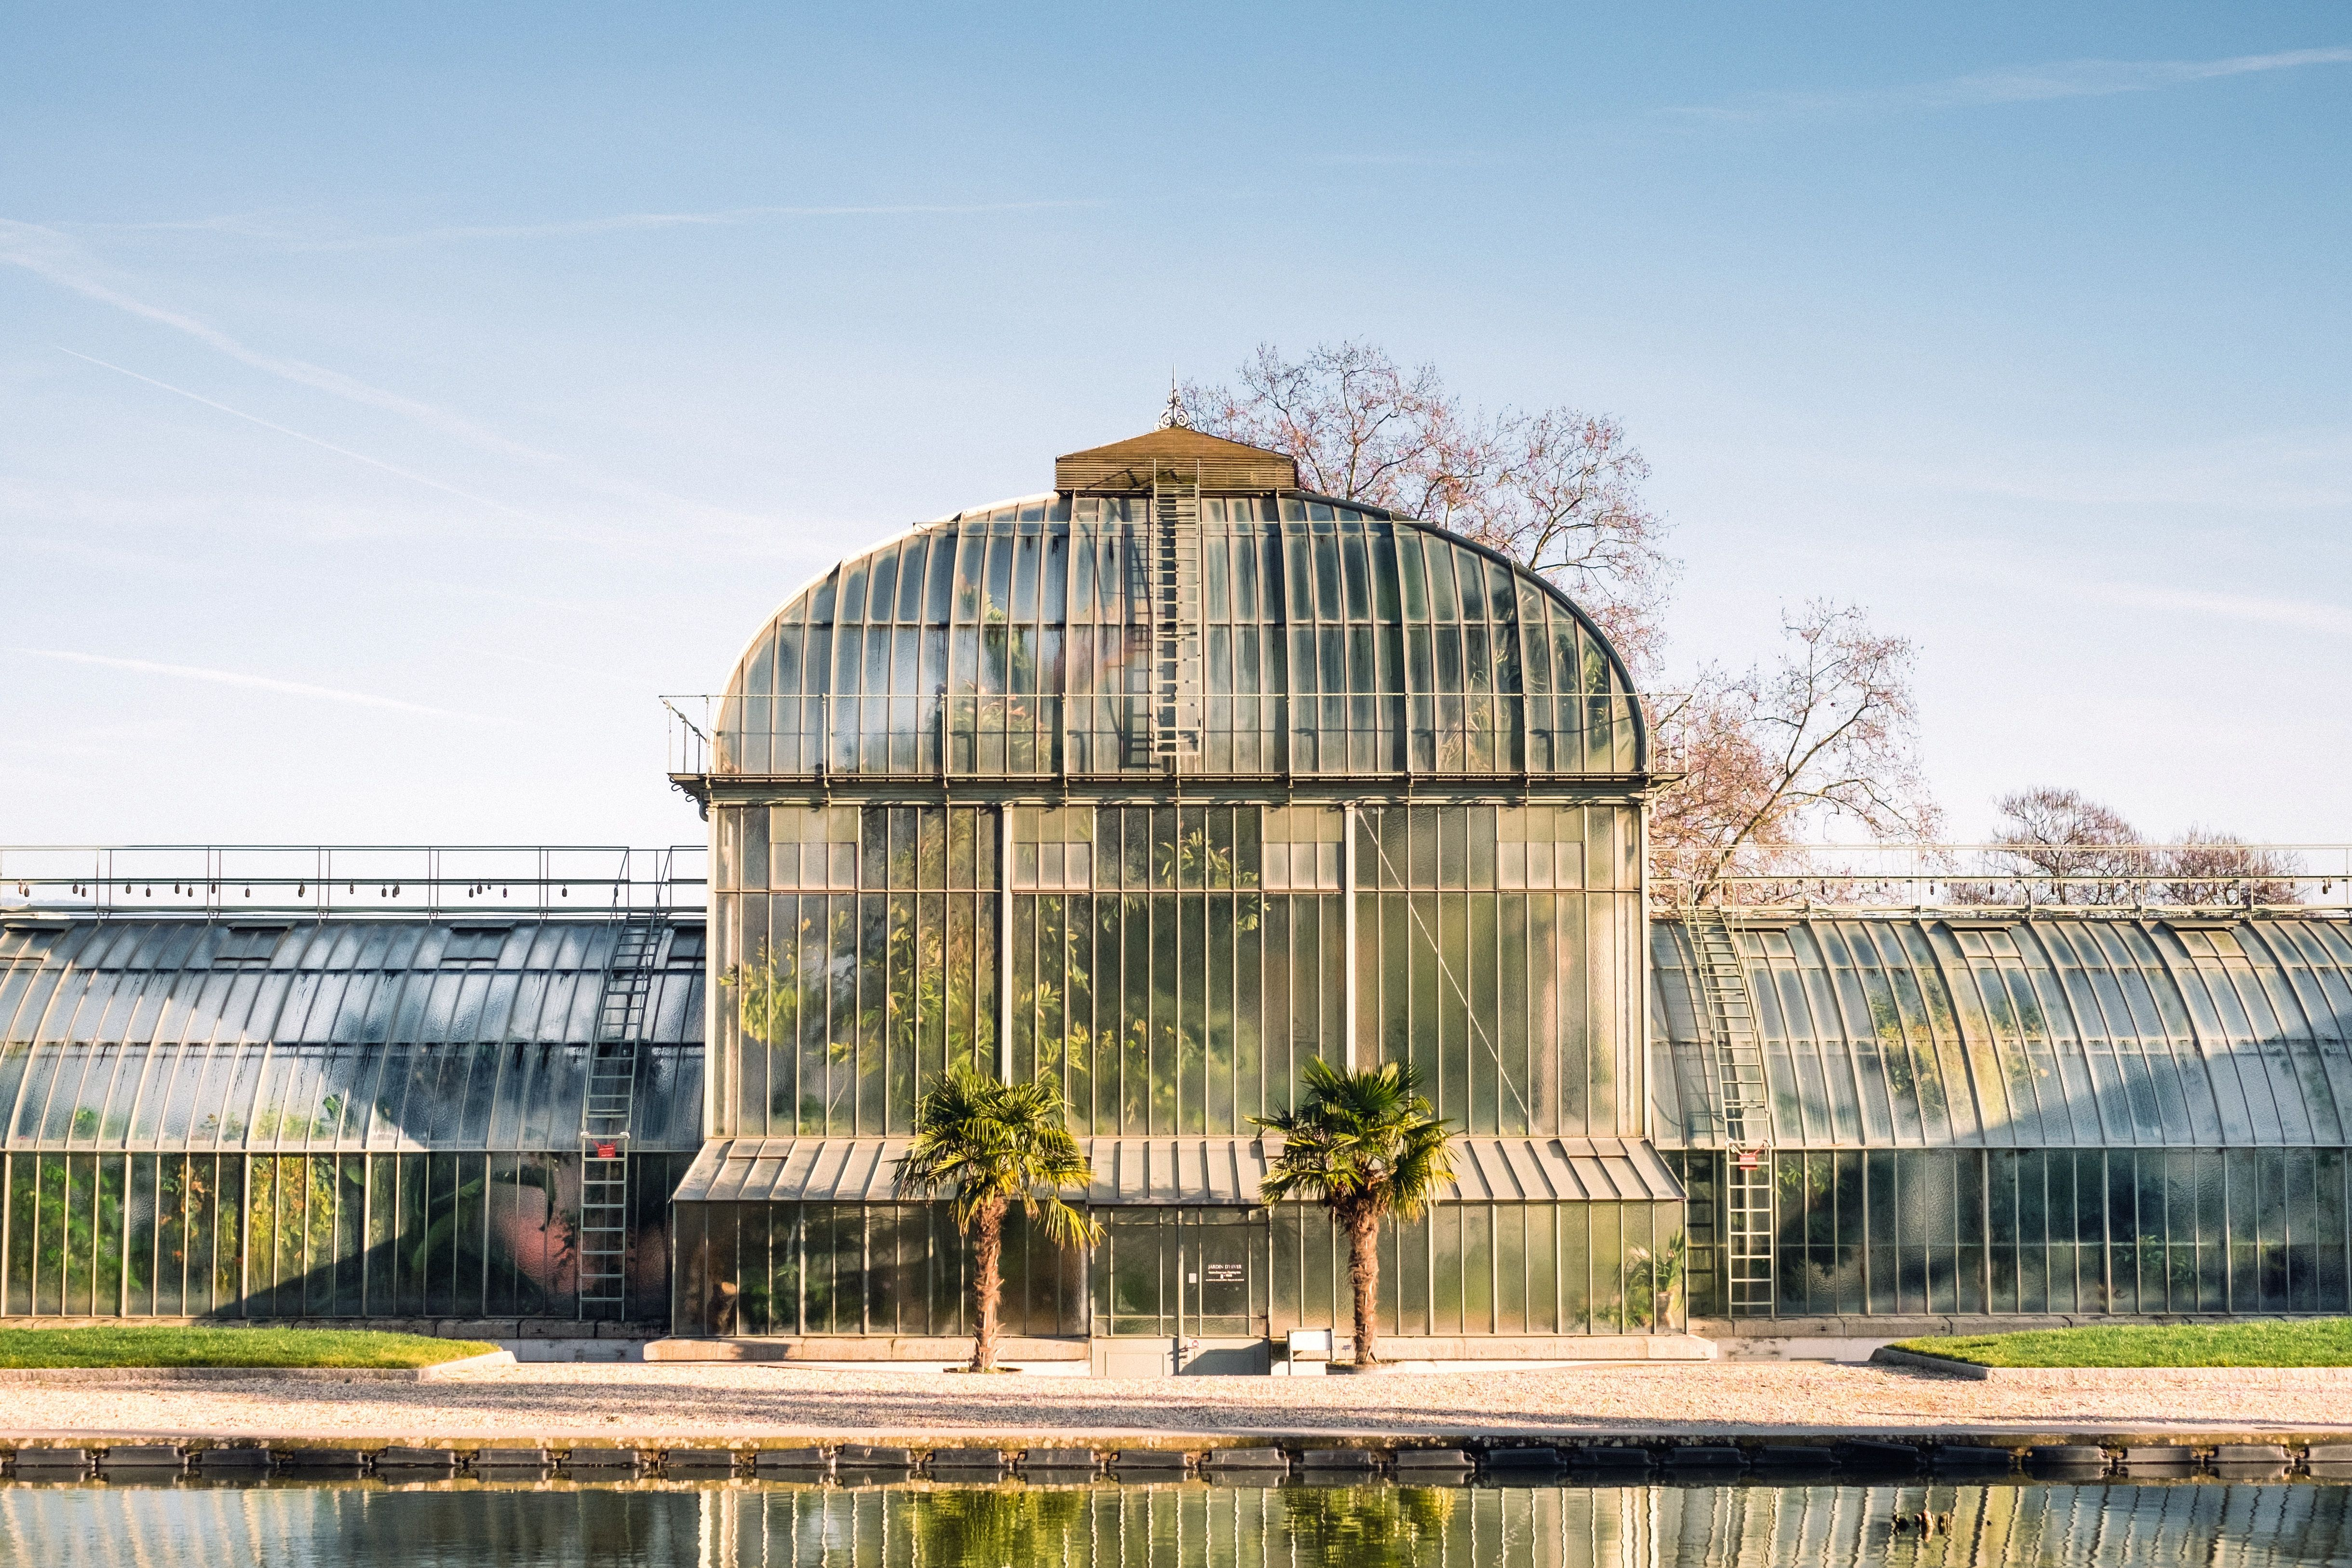 Greenhouse, Palm Trees